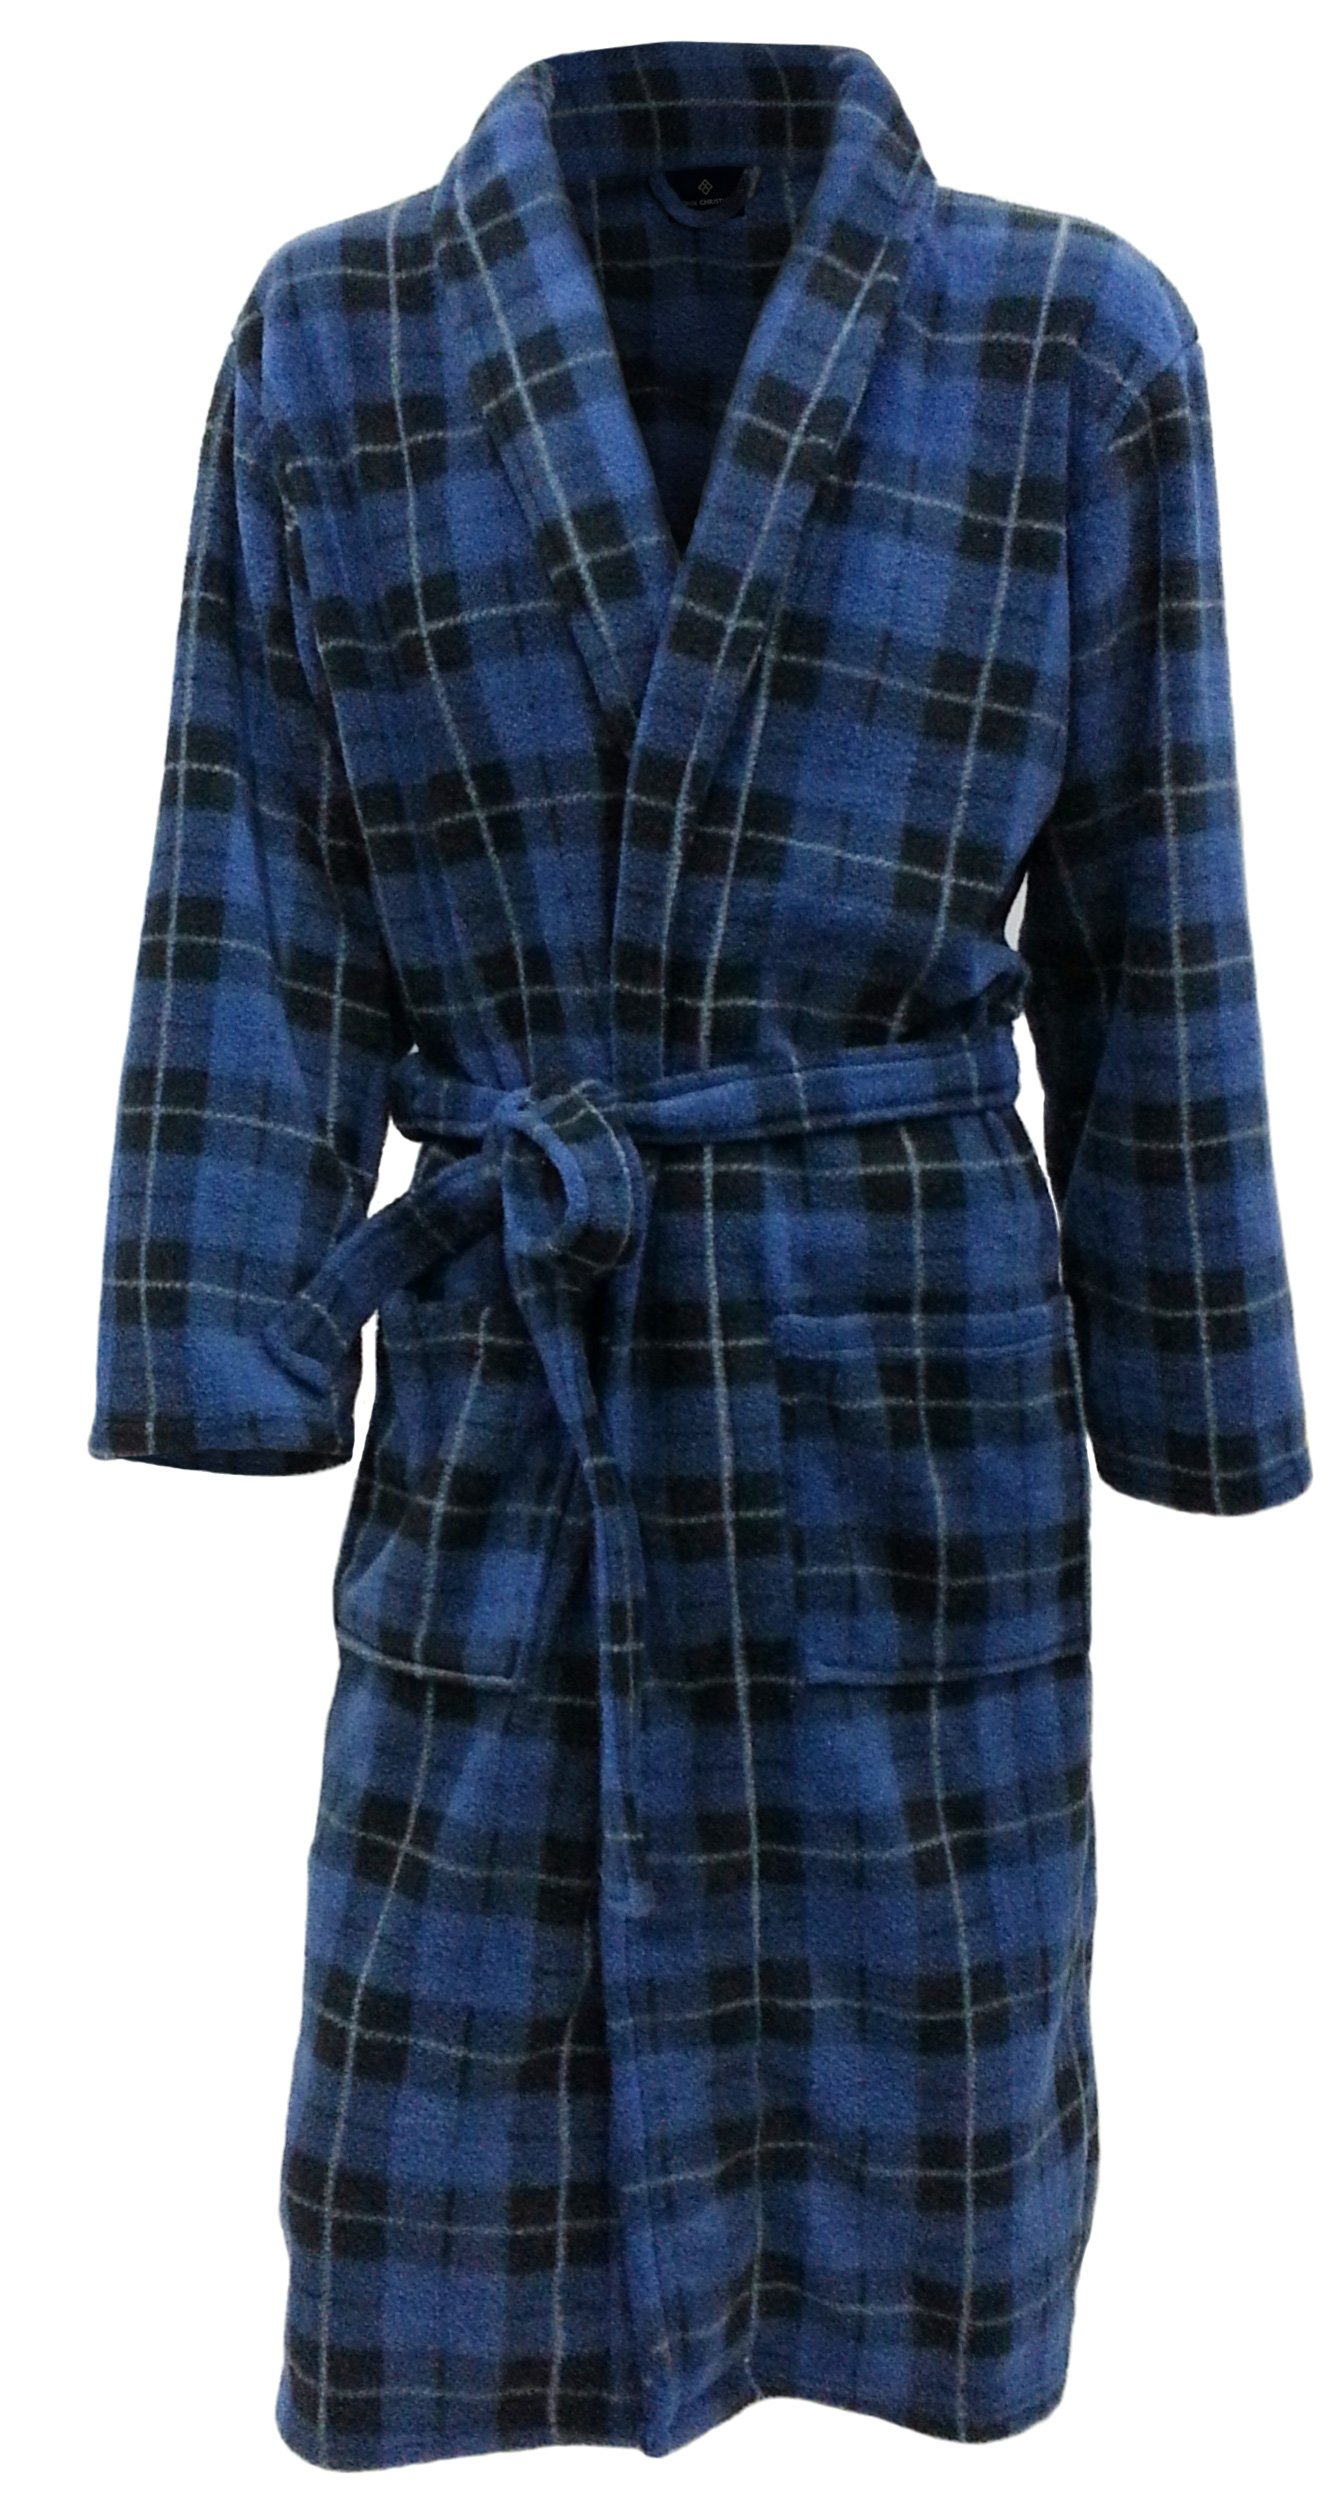 John Christian Men's Fleece Robe by Blue Tartan (Large)